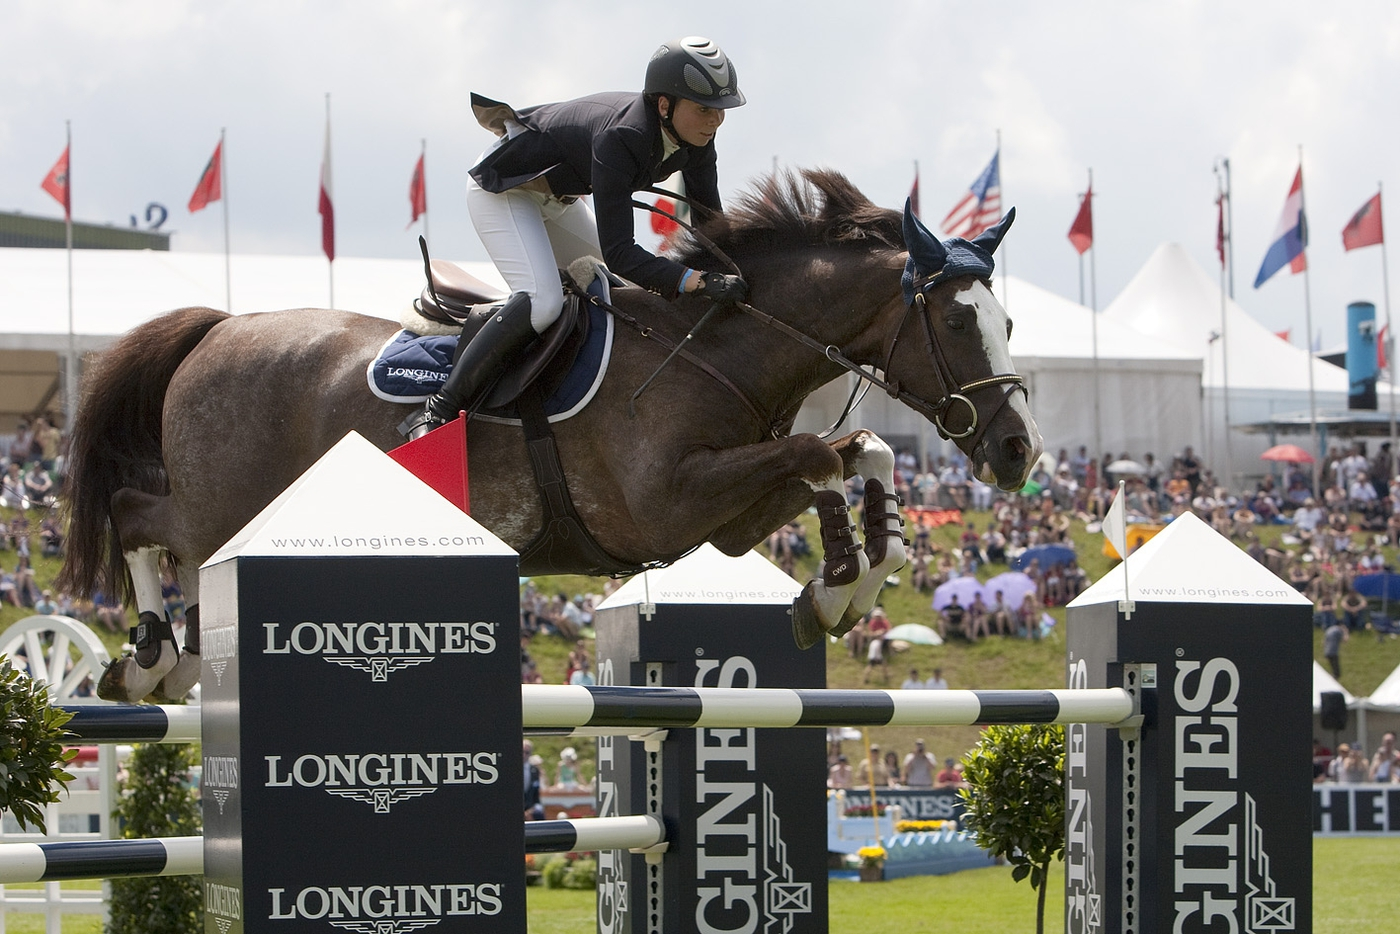 Longines Show Jumping Event: Global Champions Tour and Longines team up for four events in 2012 3